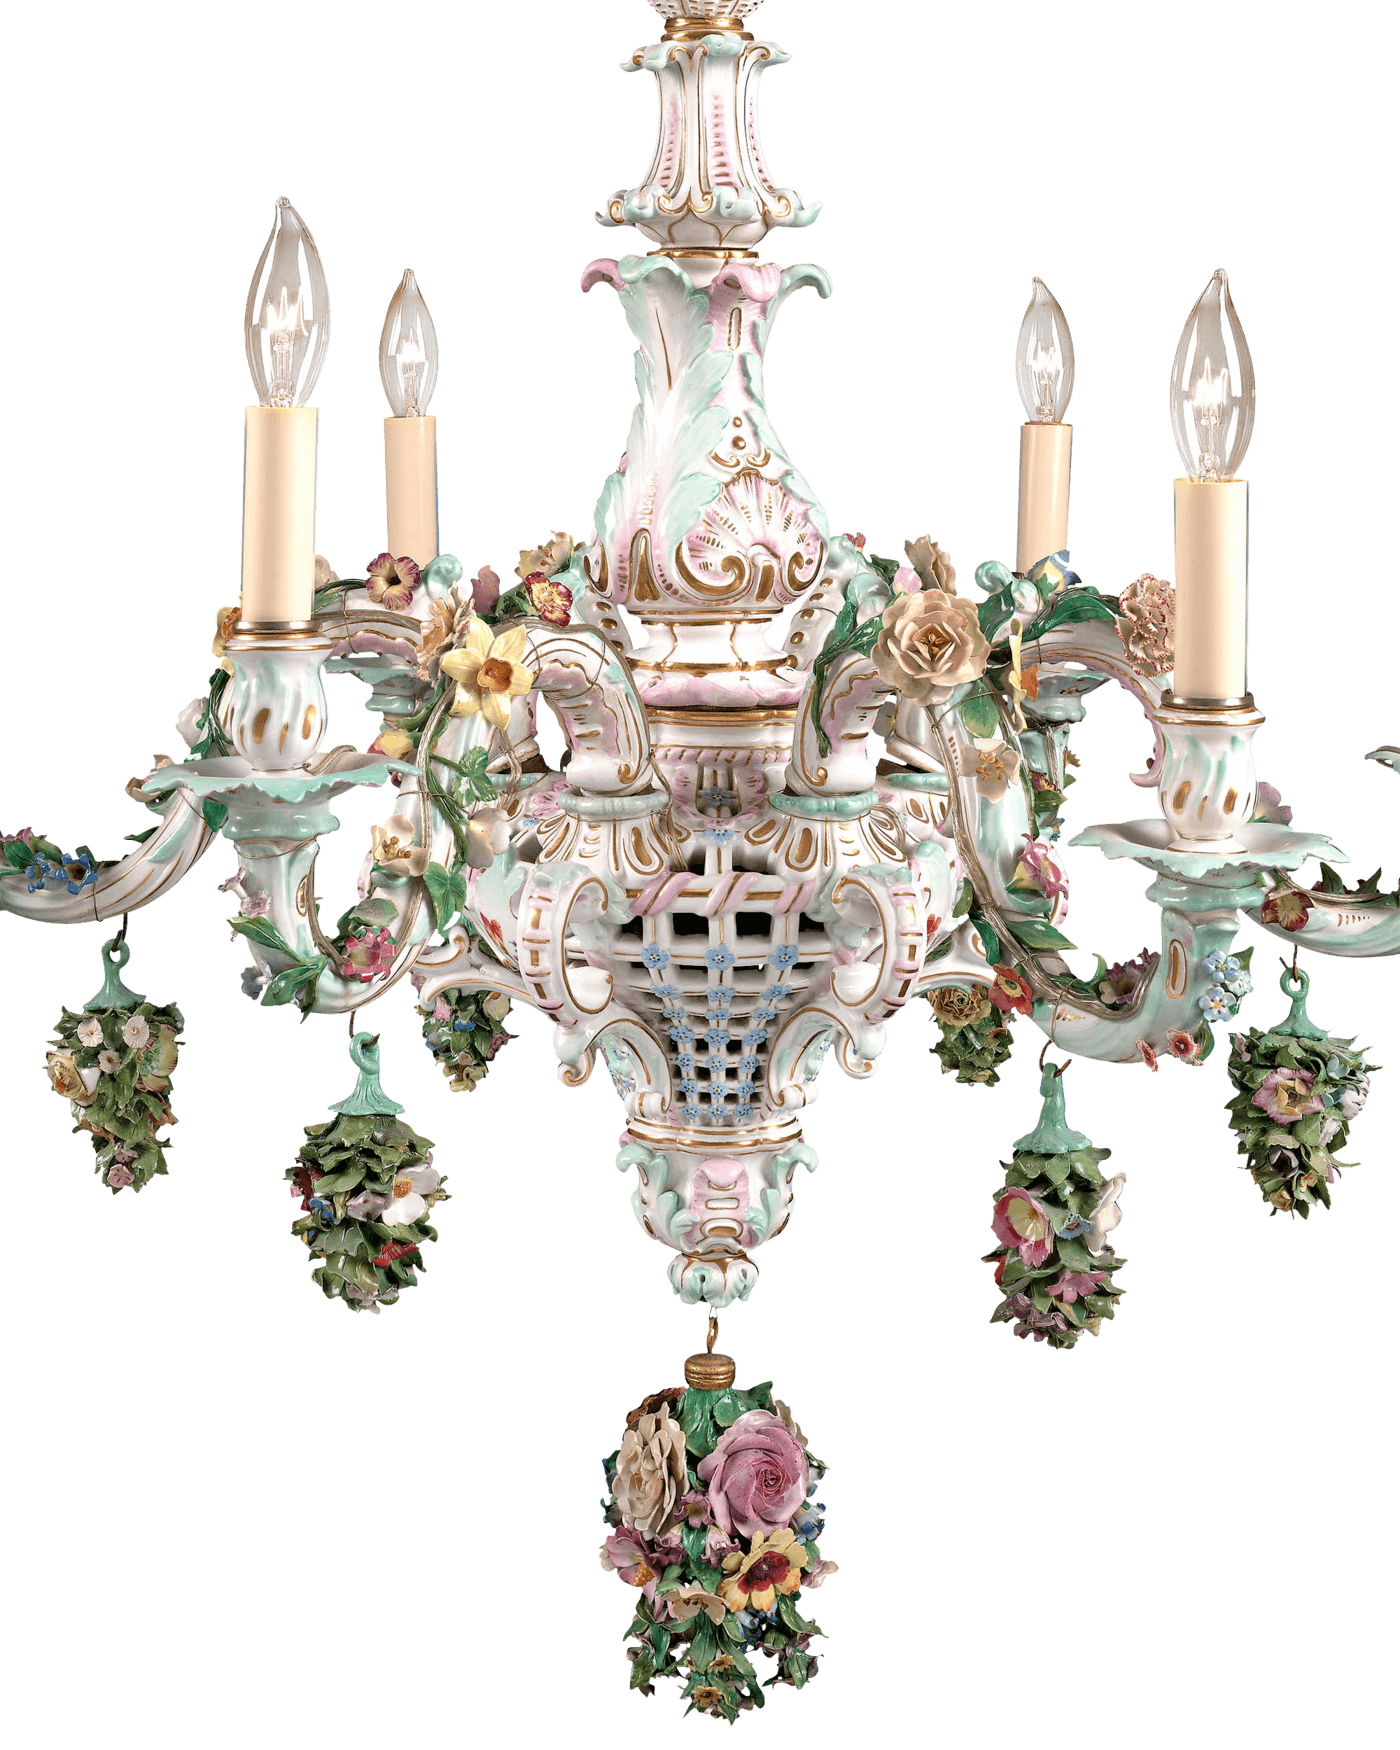 This magnificent porcelain chandelier crafted by the renowned meissen porcelain 6 light chandelier porcelain since 1912 arubaitofo Gallery